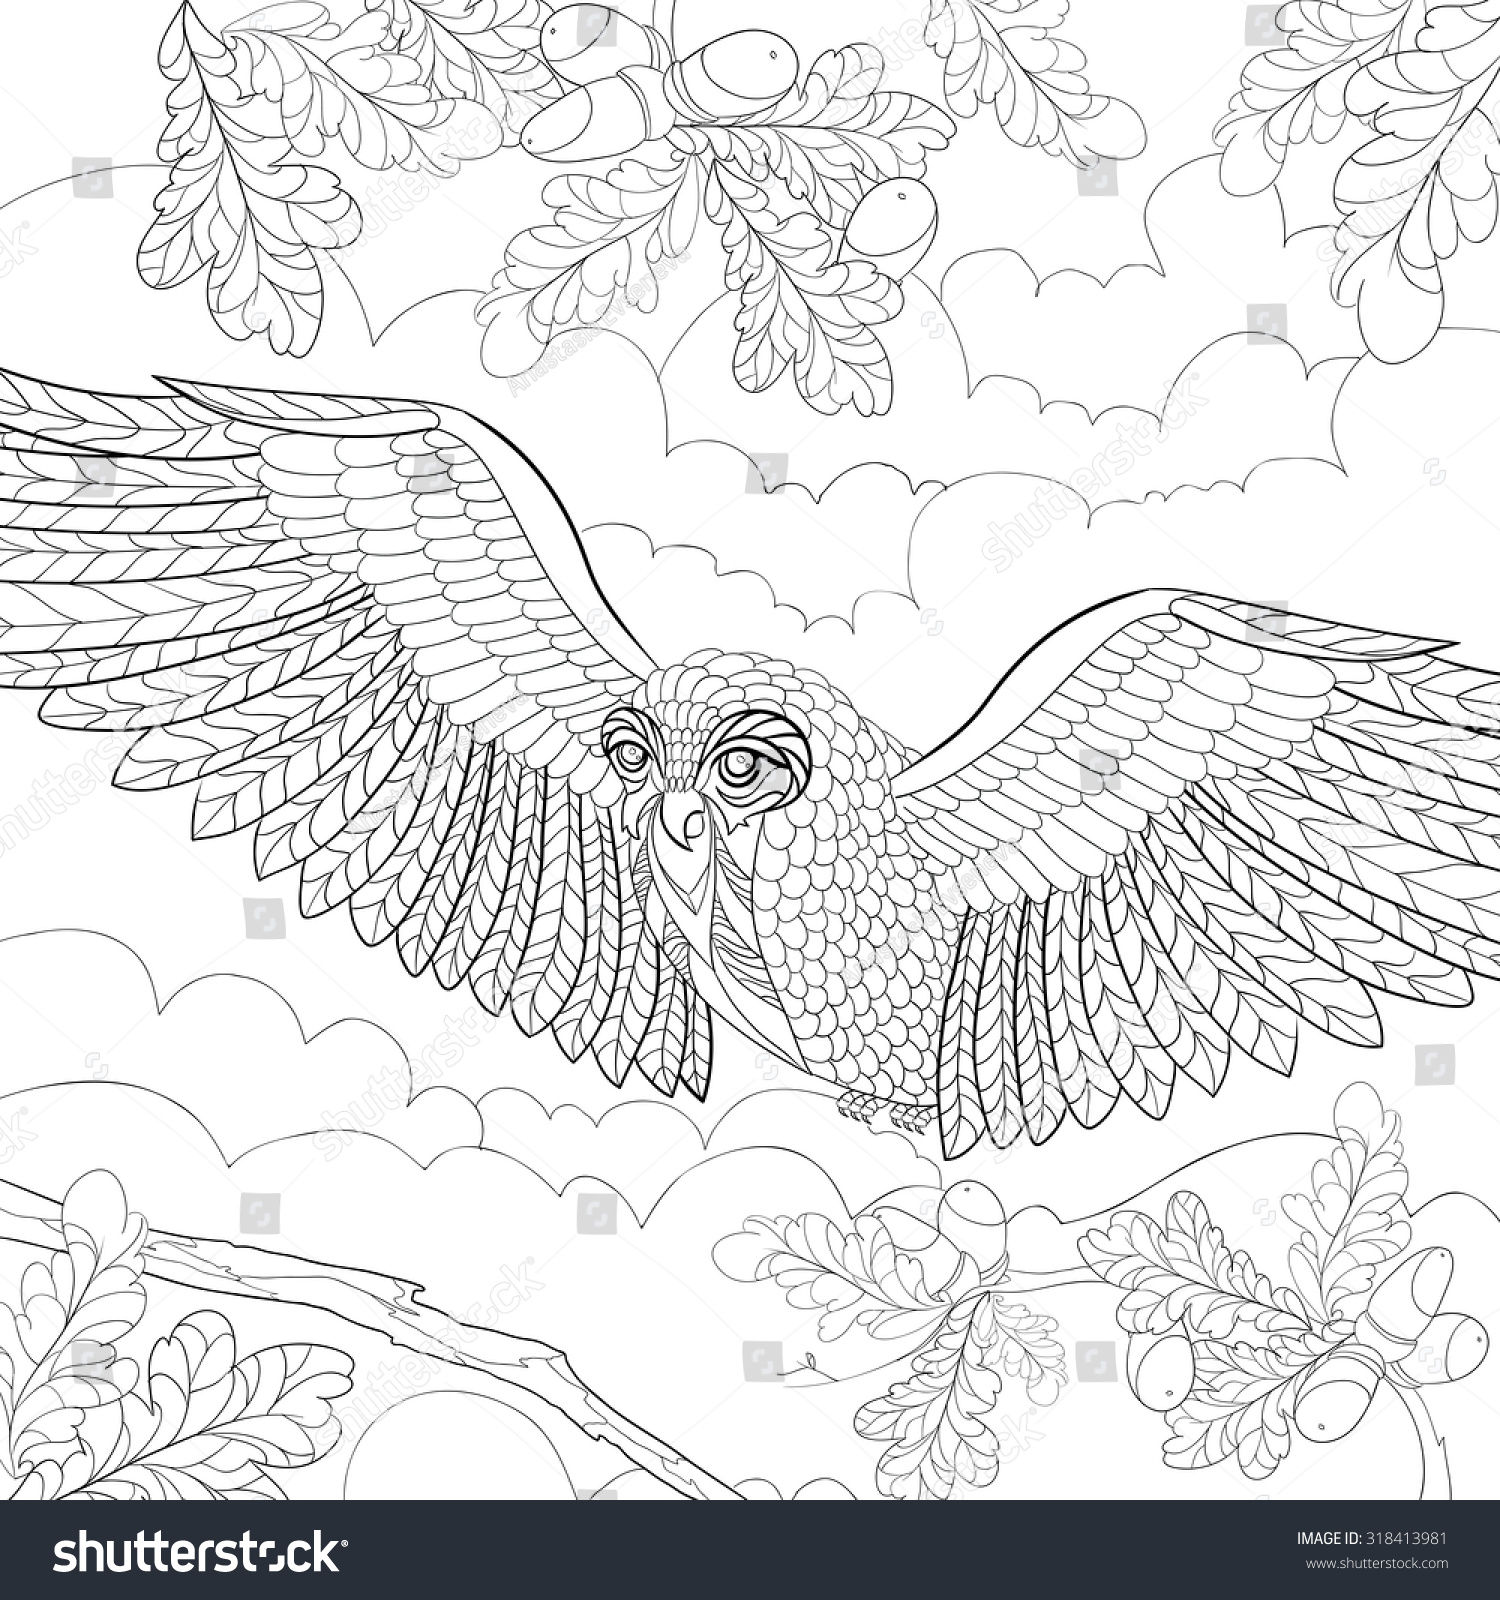 Fish Coloring Page Worksheets & Teaching Resources | TpT | 1600x1500